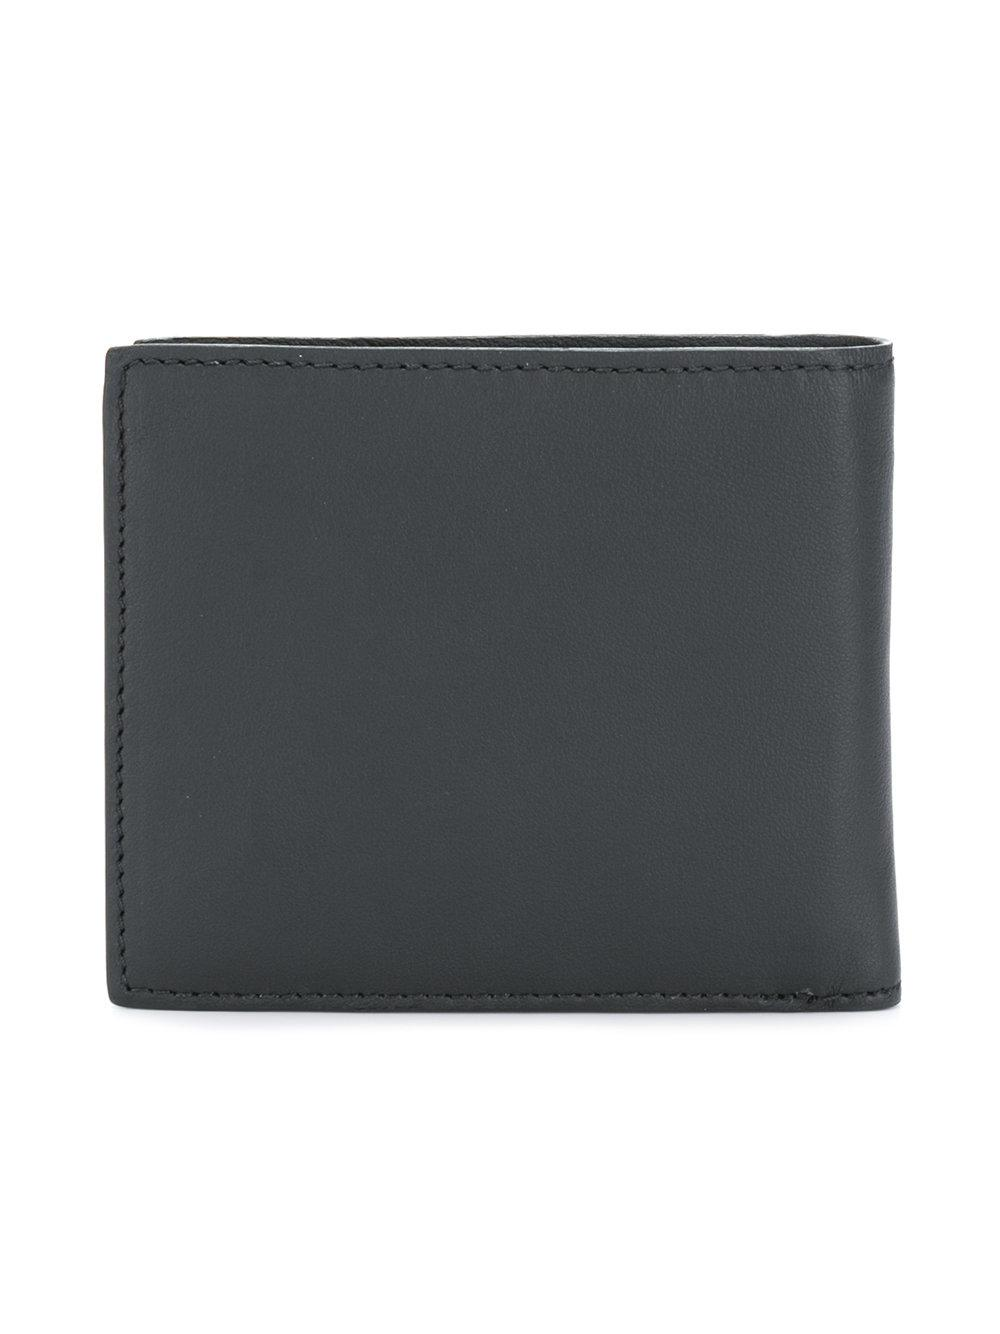 f0ab02464a Lyst - Versace Medusa Stud Wallet in Black for Men